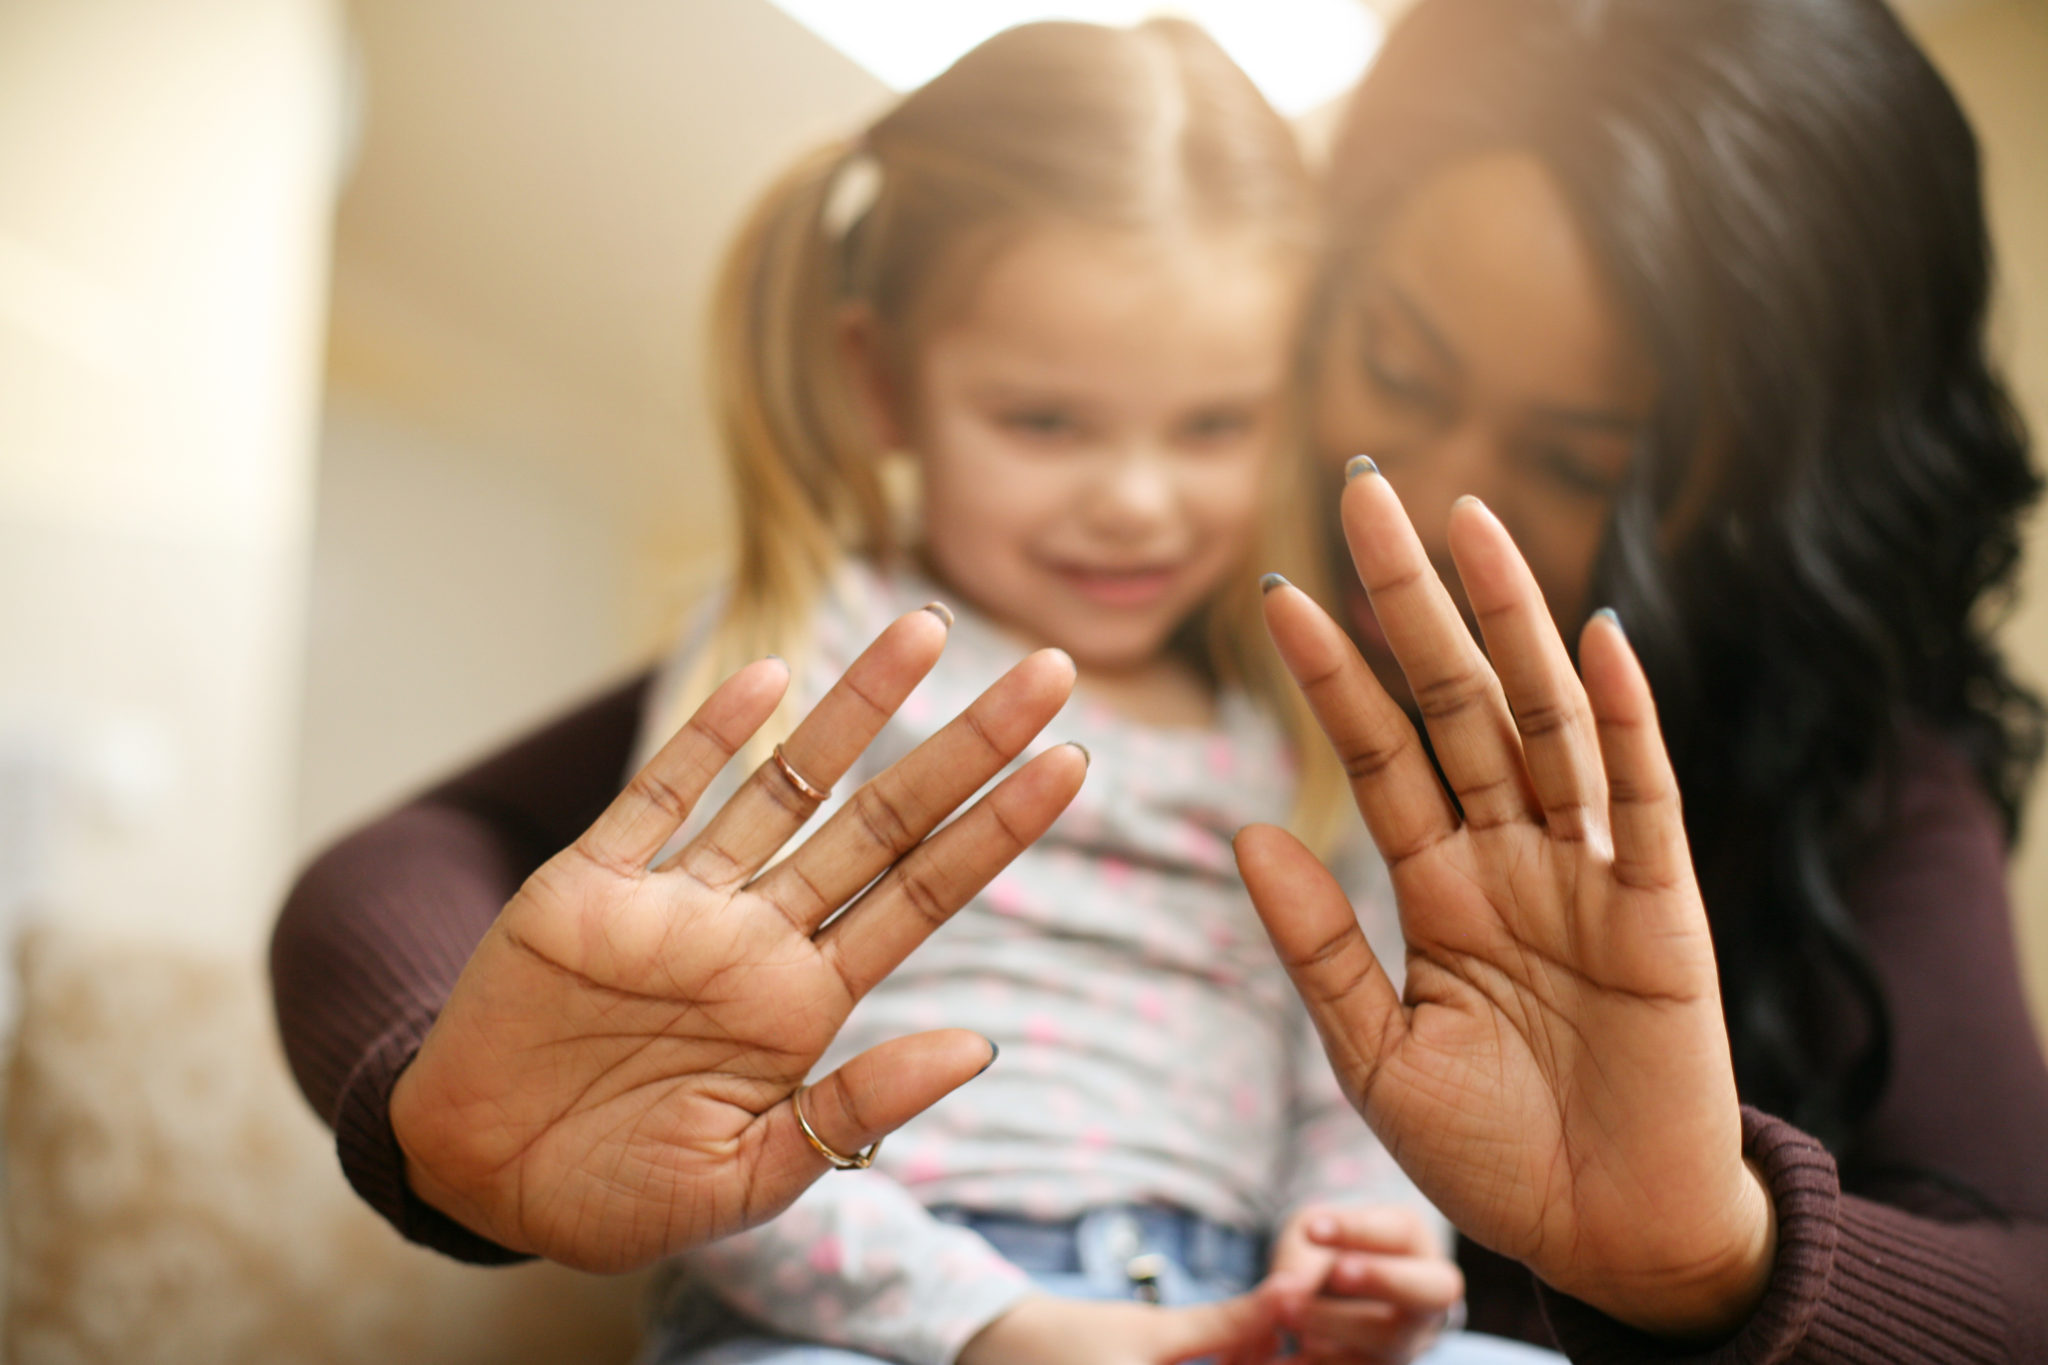 Close-up. African American woman with child. Focus on hands.